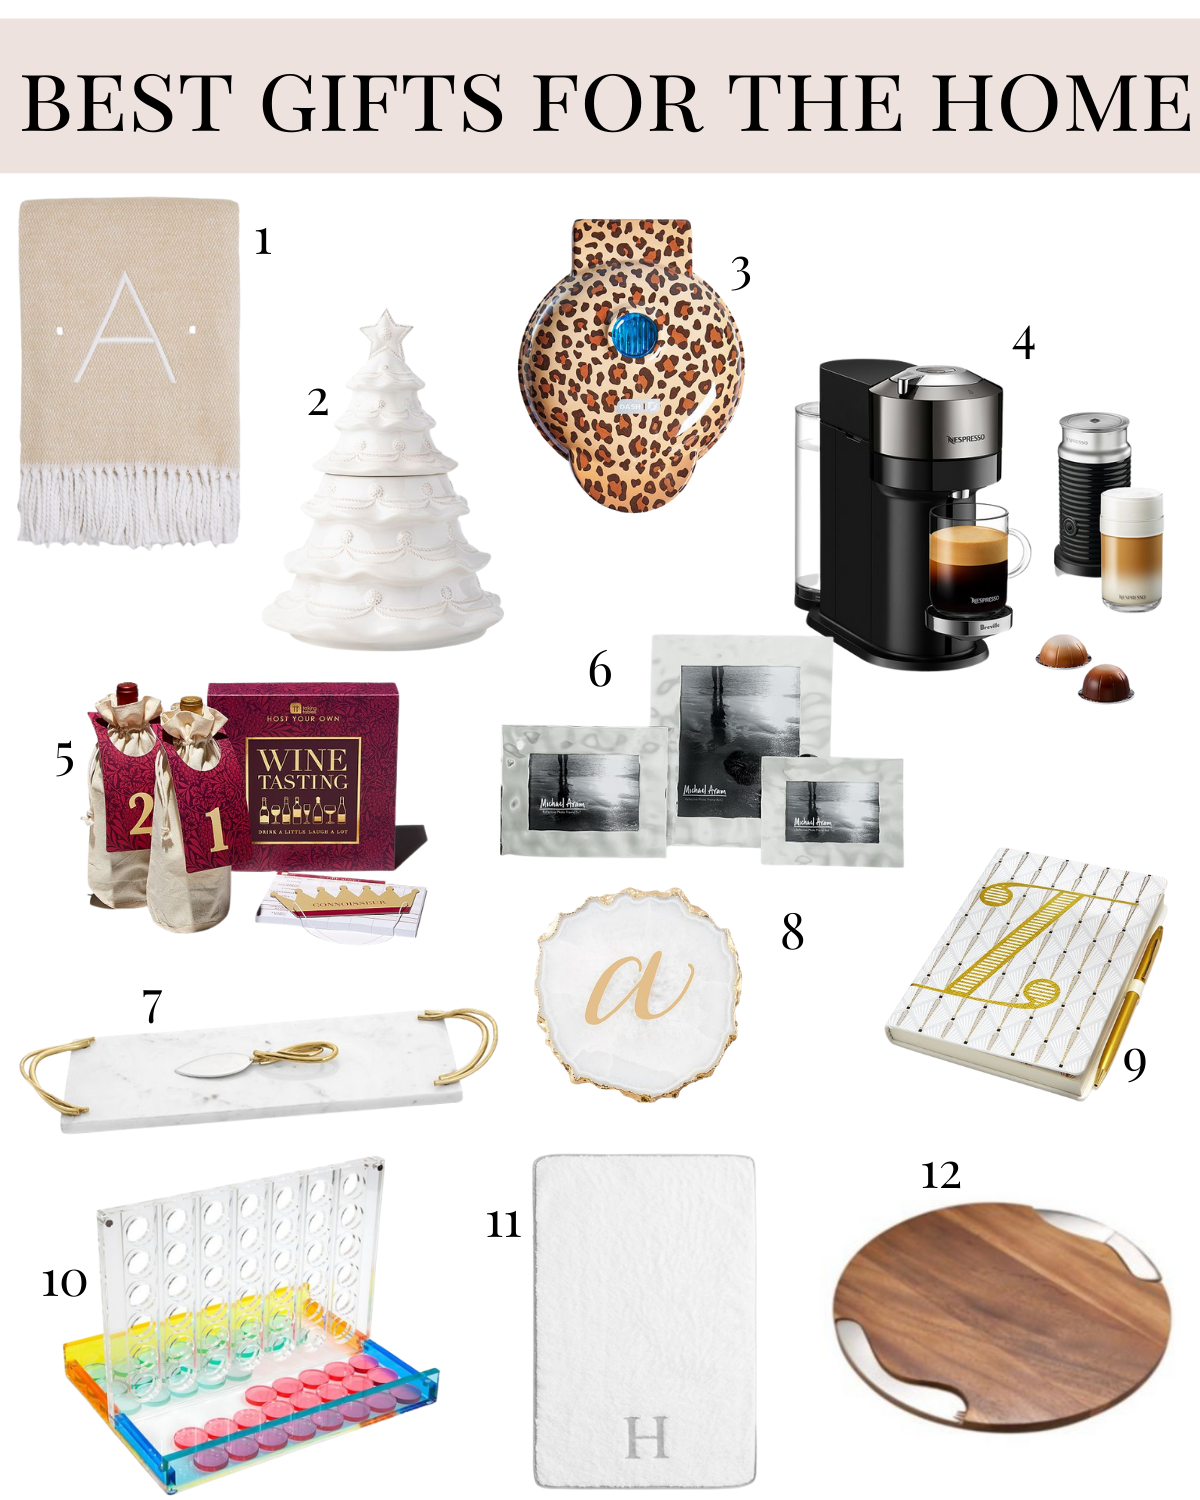 Best Gifts For the home gift guide from Bloomingdales